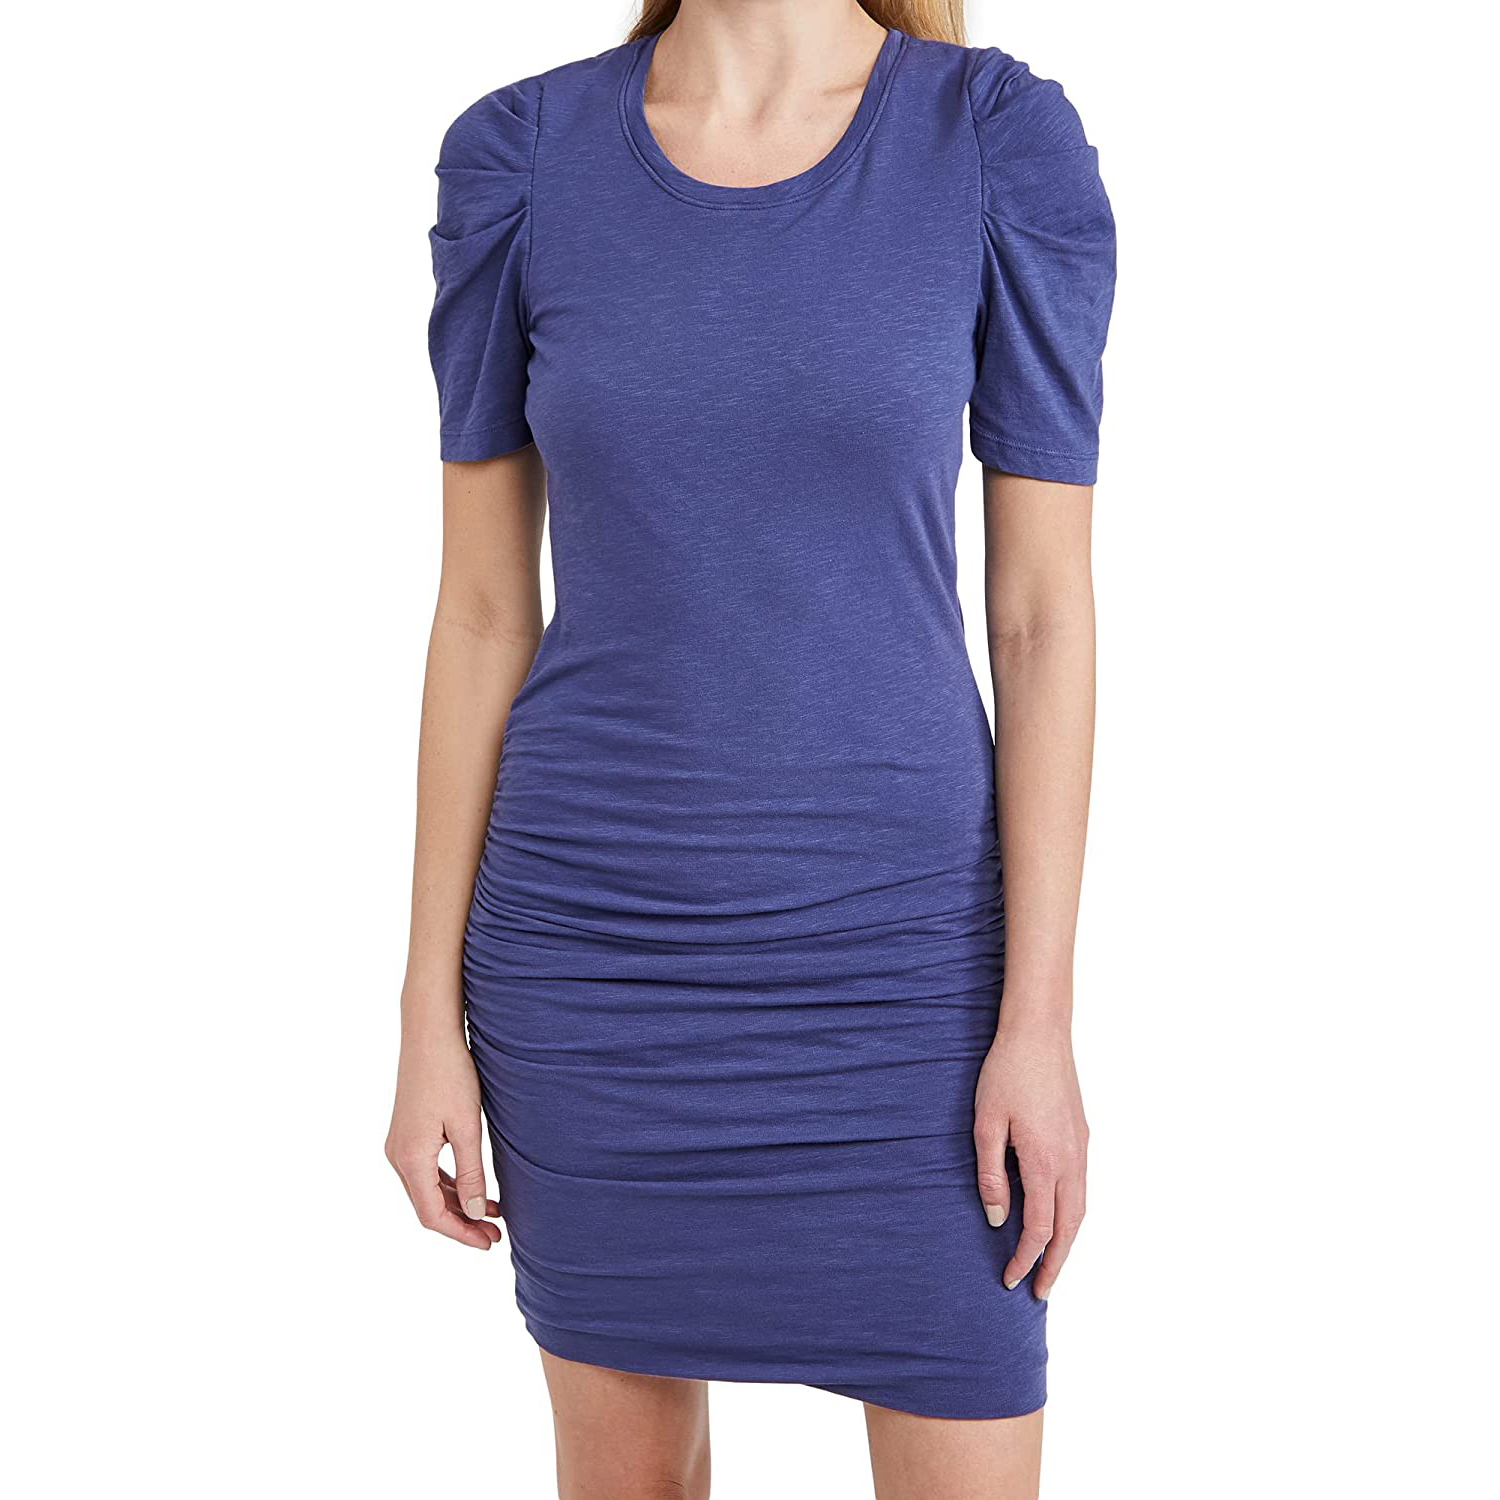 Dress with shirs